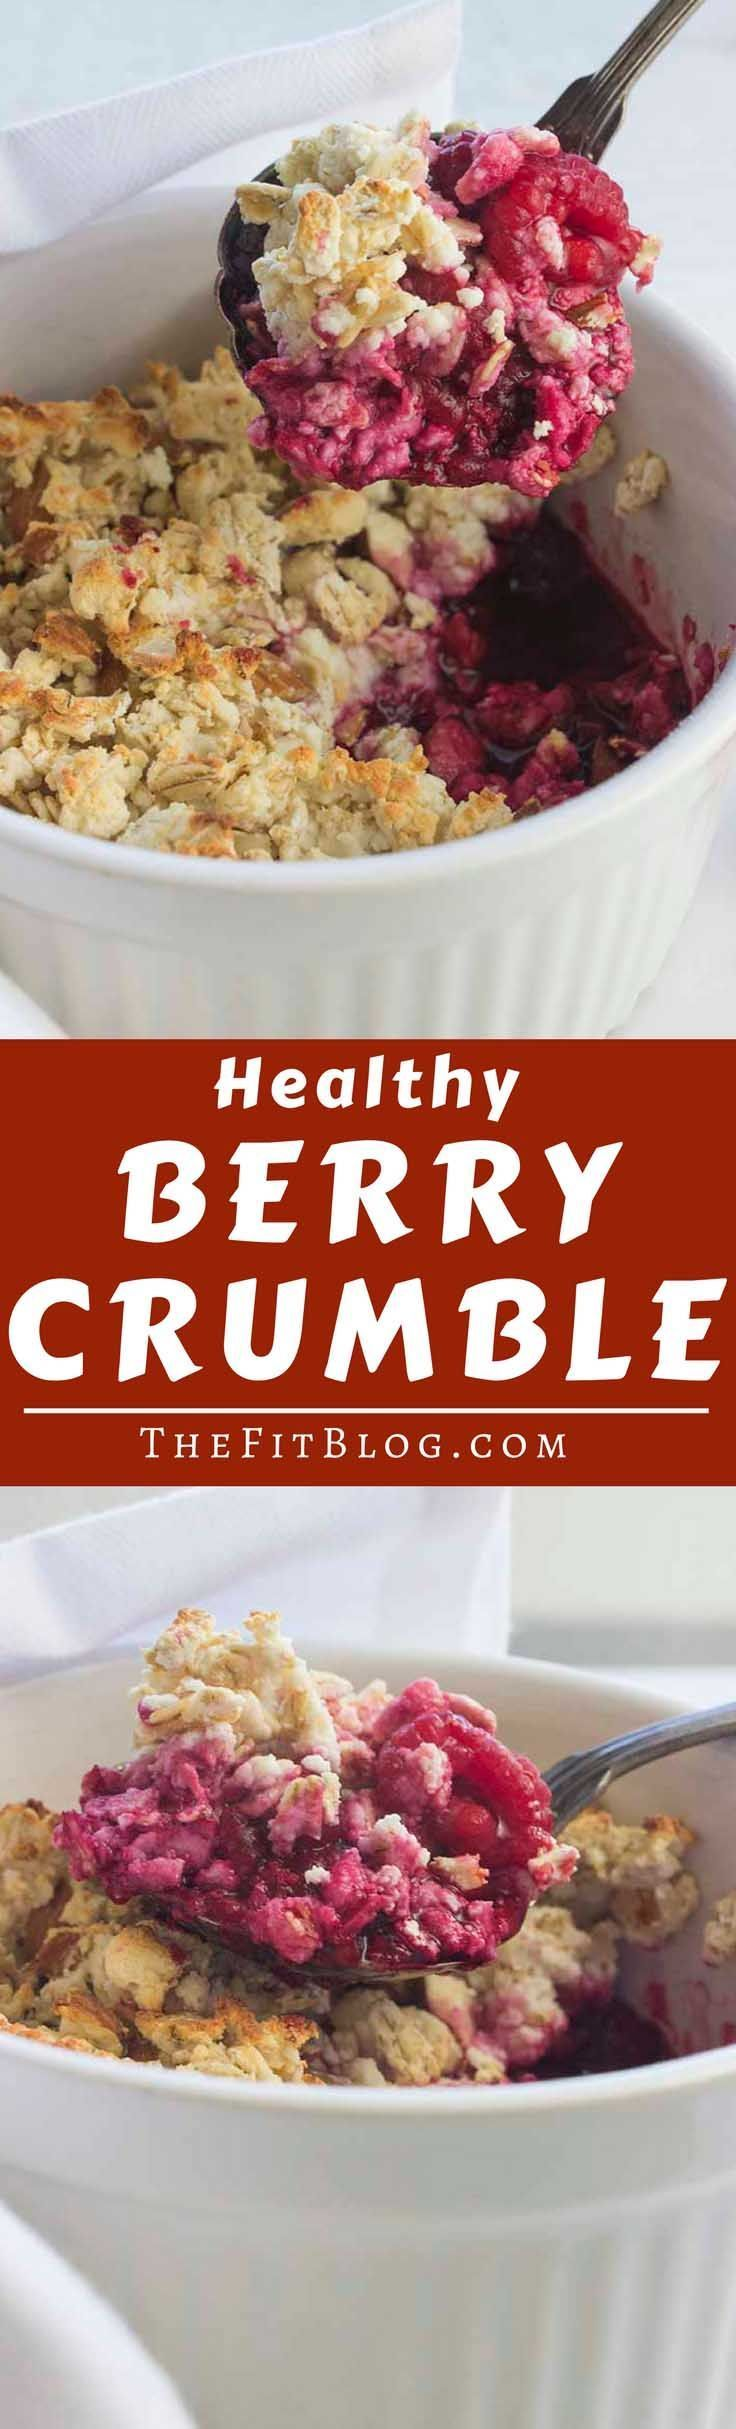 Who says you can't have cake for breakfast? This berry crumble looks and tastes like cake but it actually has the perfect macronutrients for a healthy breakfast or snack    high protein   low carb   sugar free   gluten free   diabetes friendly    via @TheFitBlog